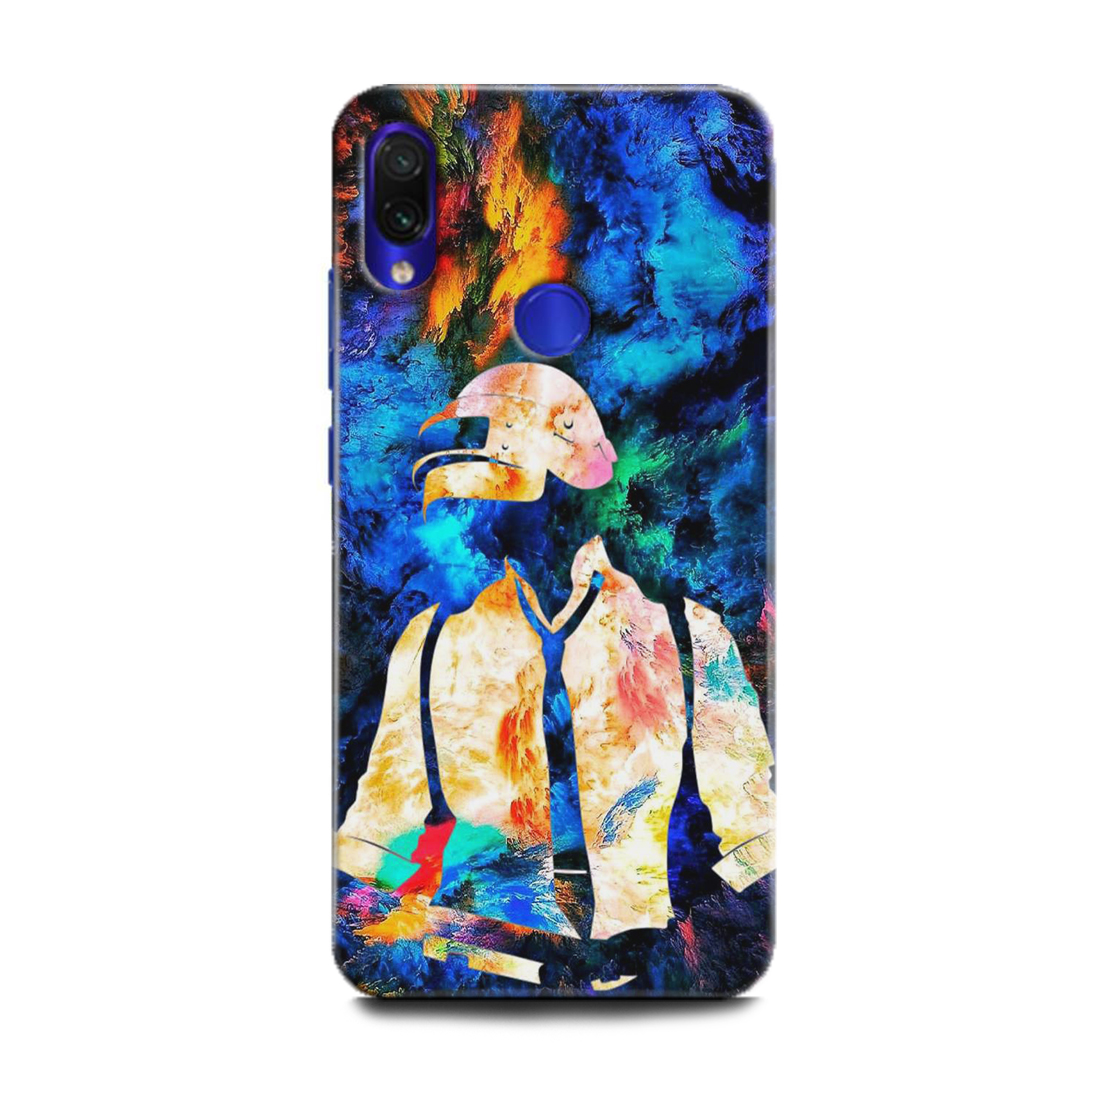 INDICRAFT Mobile Back Cover For Mi Redmi Note 7s / Hard Case (Pubg, Game, Colorful, MZB7742IN) (AB-RedmiNote7s-0529)